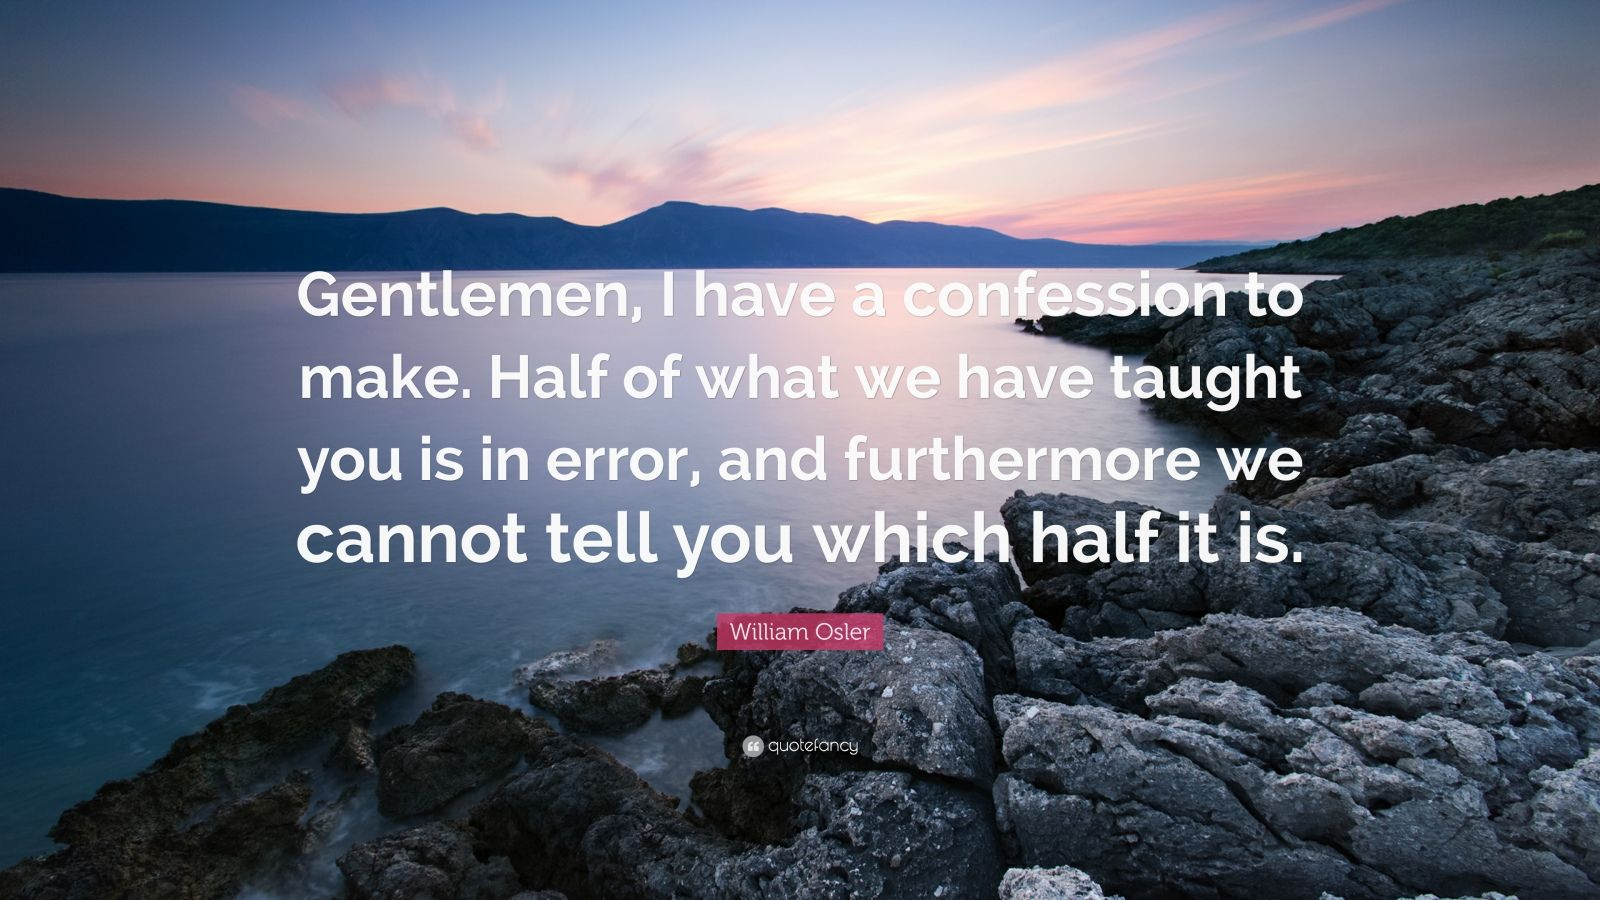 Top 120 William Osler Quotes | 2021 Edition | Free Images ...